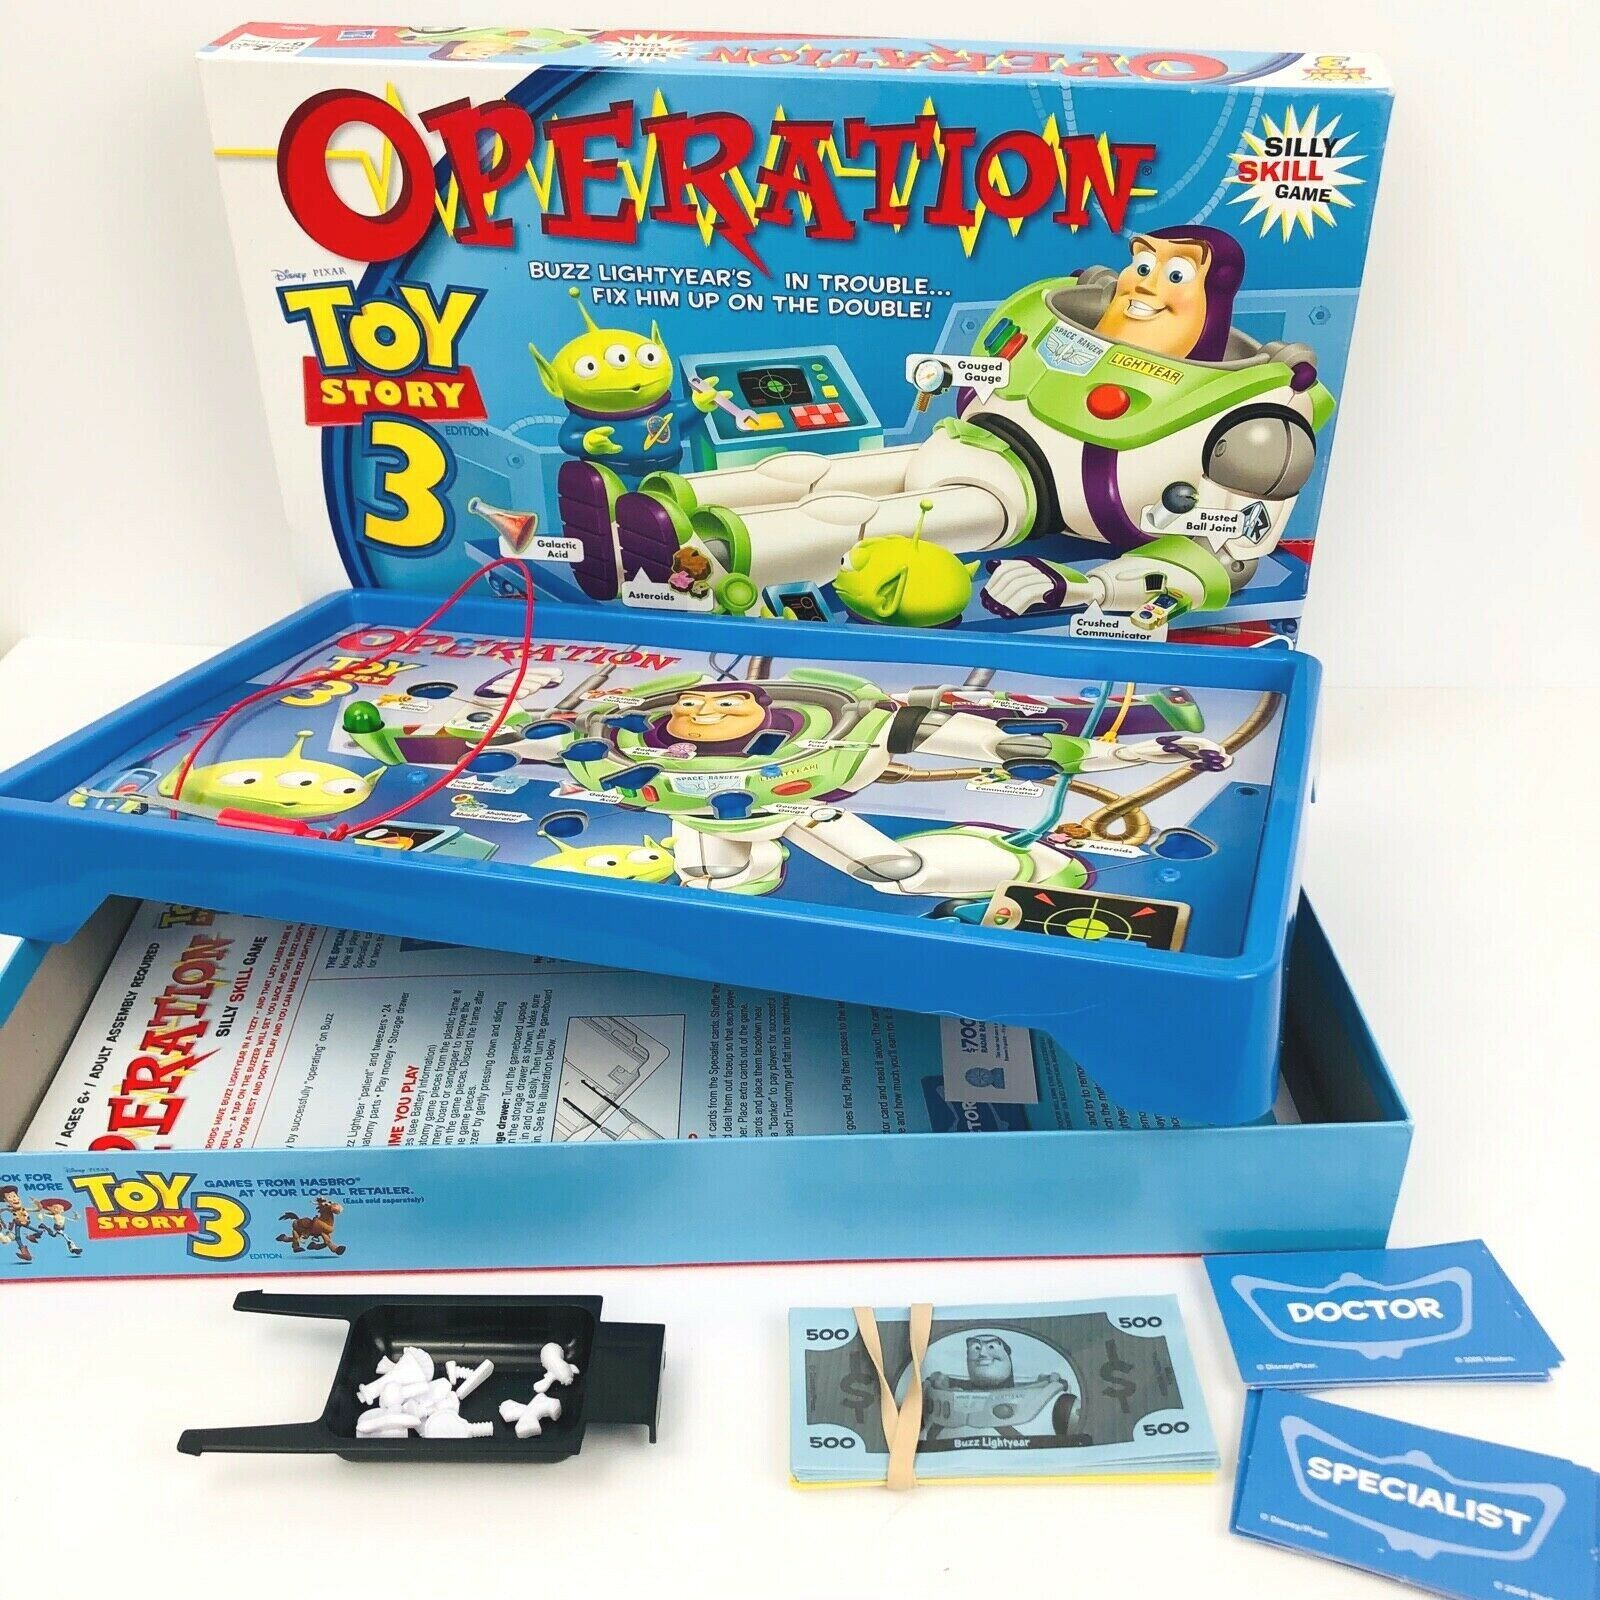 Primary image for DISNEY Operation Toy Story 3 Buzz Lightyear Game 2009 Hasbro Pixar MB